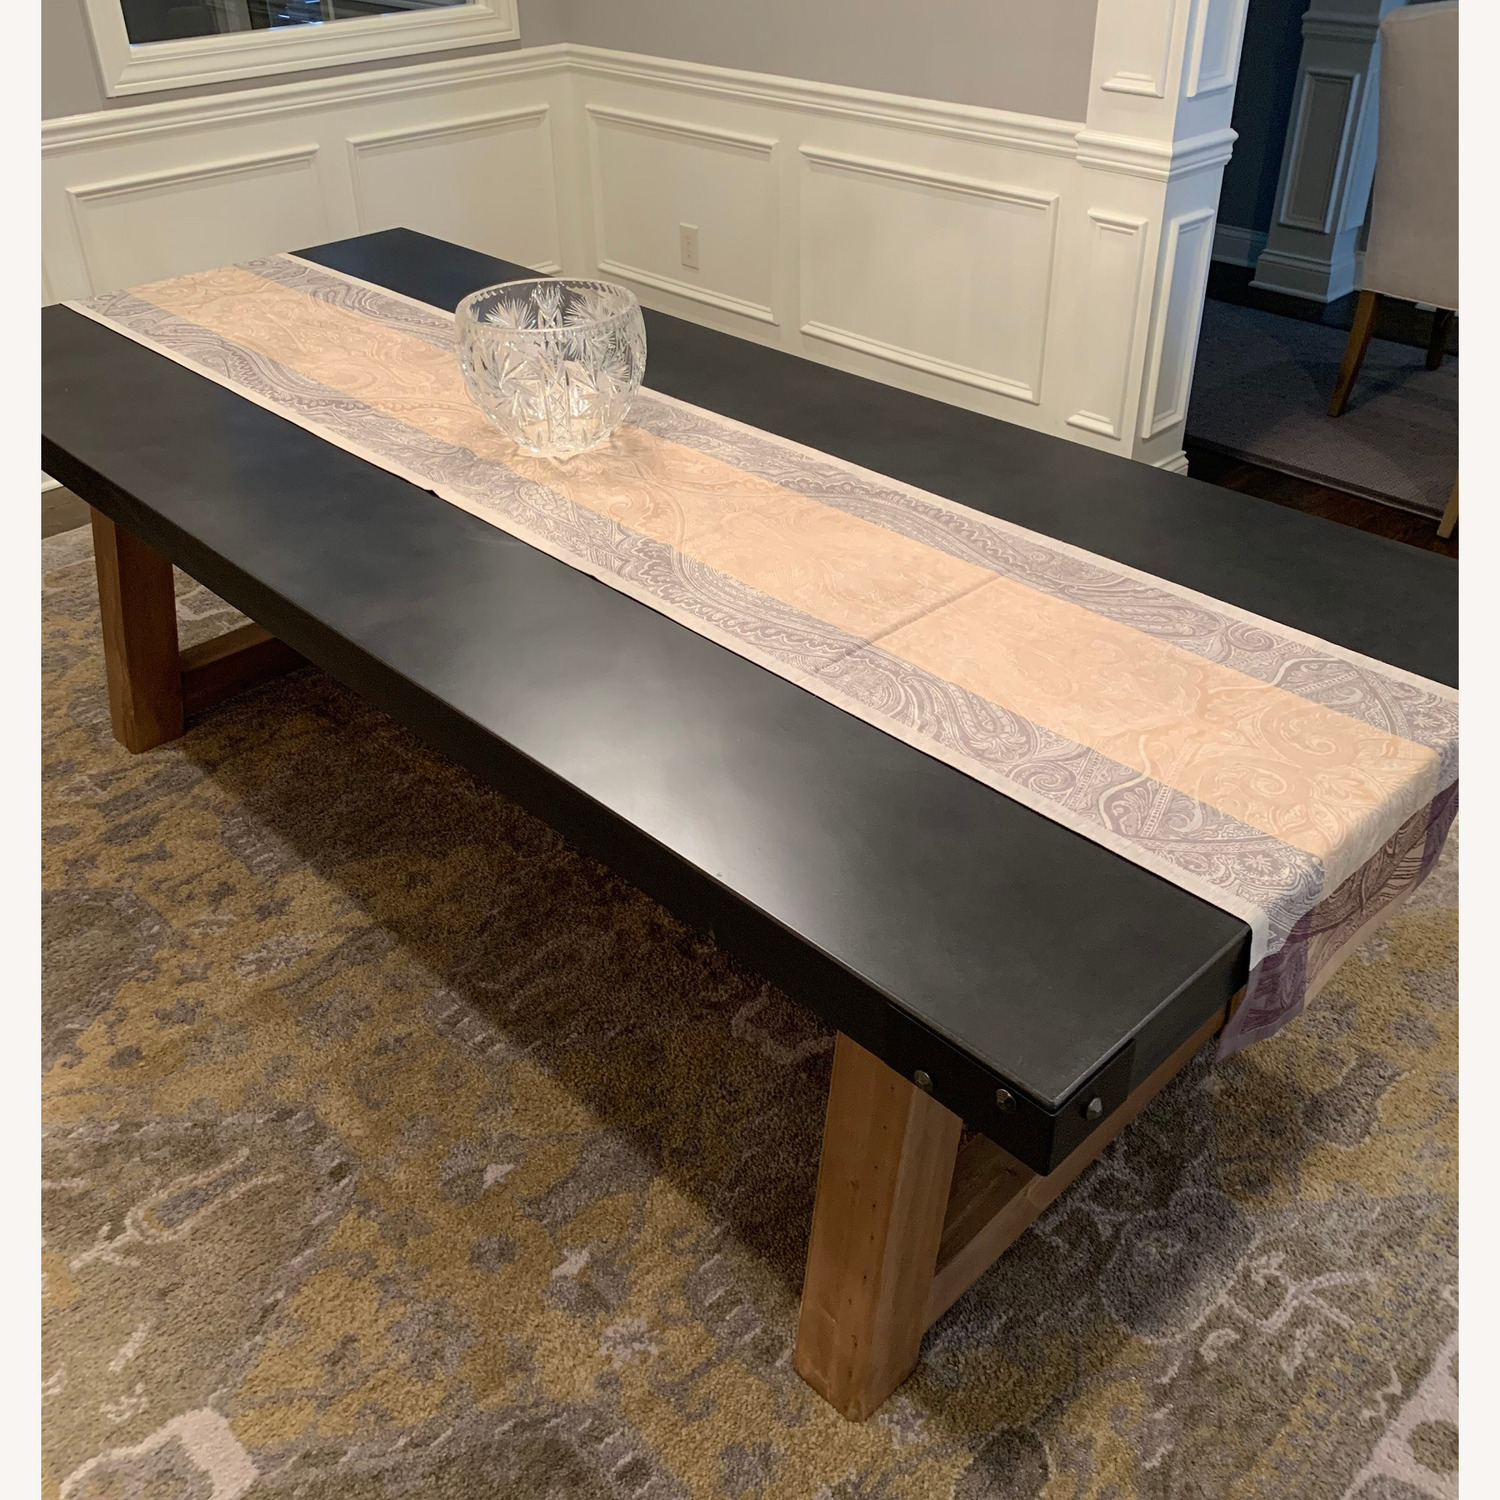 Restoration Hardware Salvaged Wood and Concrete Table - image-2